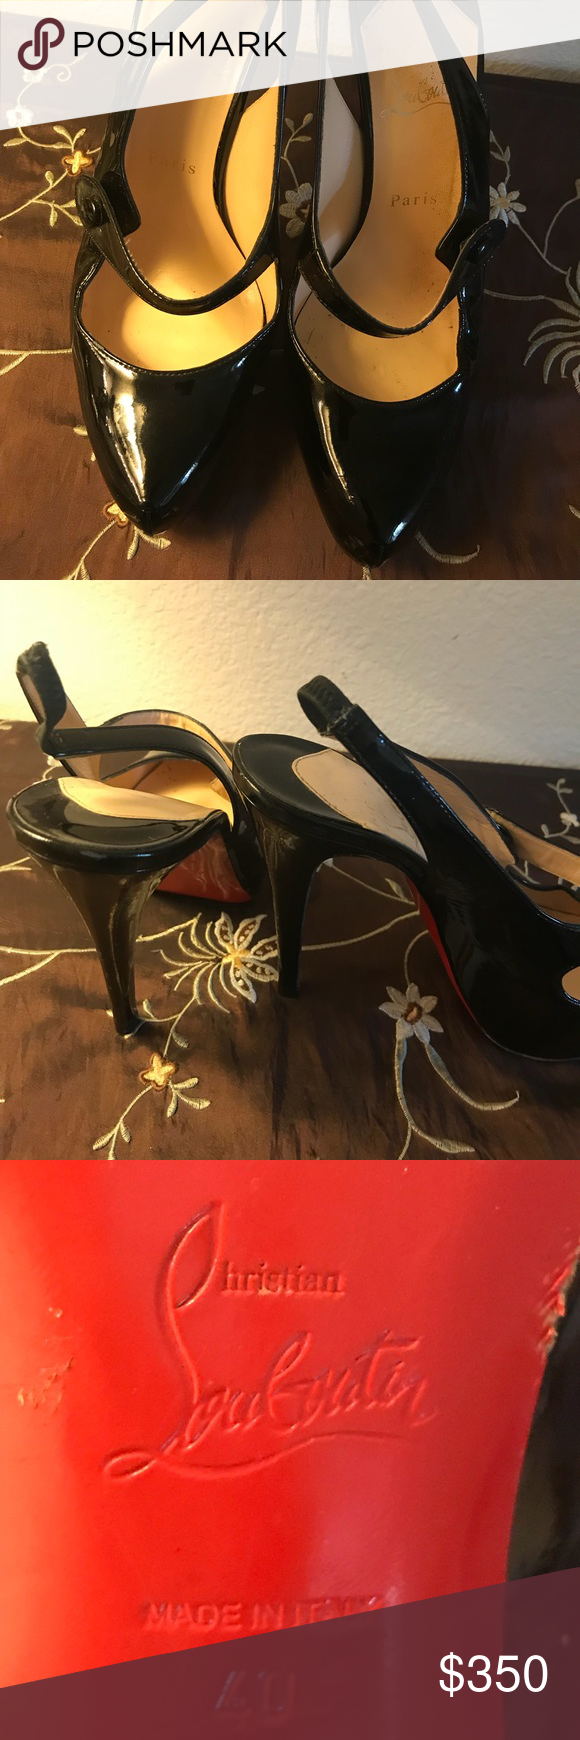 christian louboutin size 40 conversion